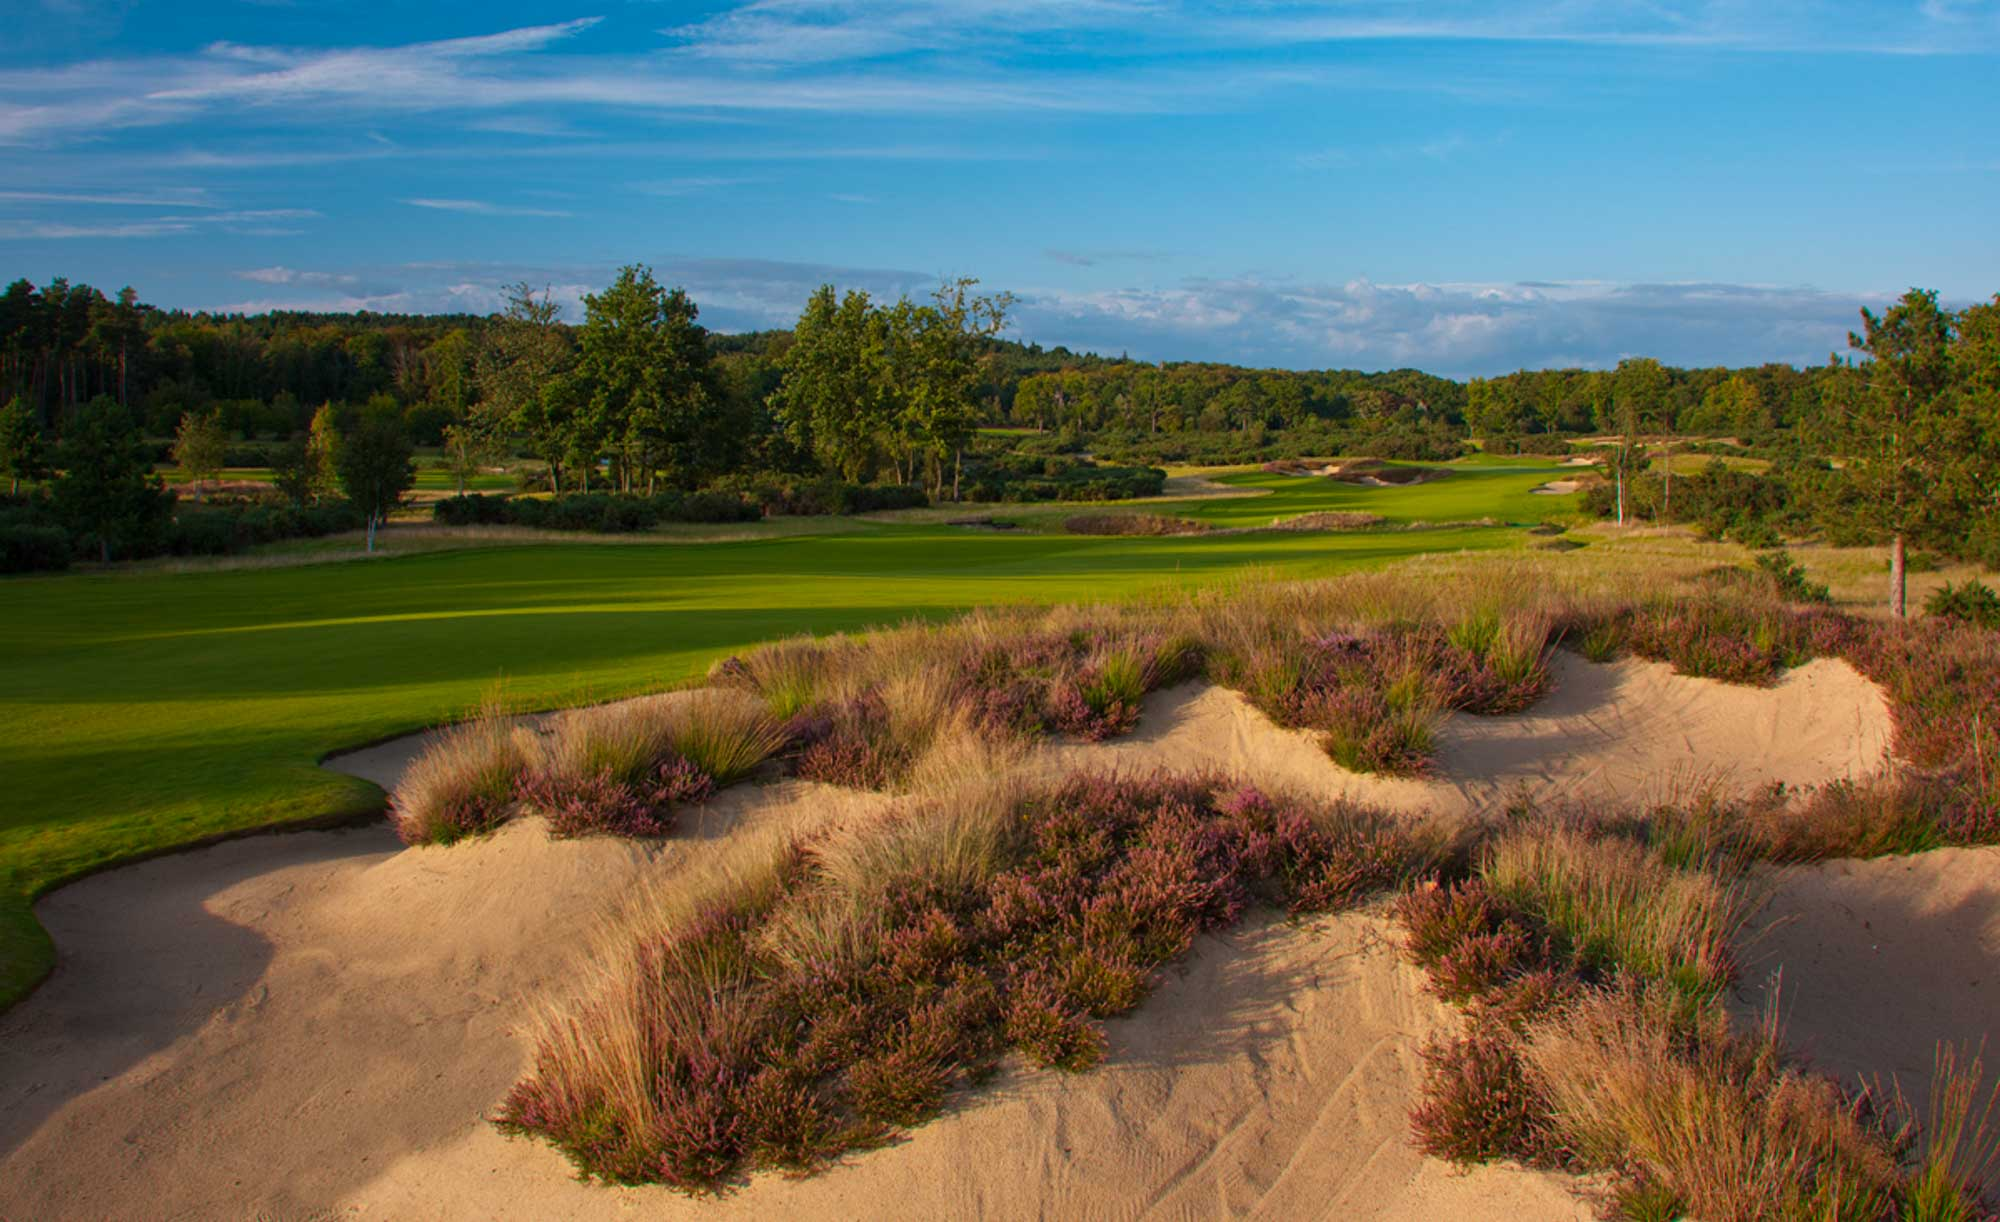 The heather accents at Queenwood Golf Course.